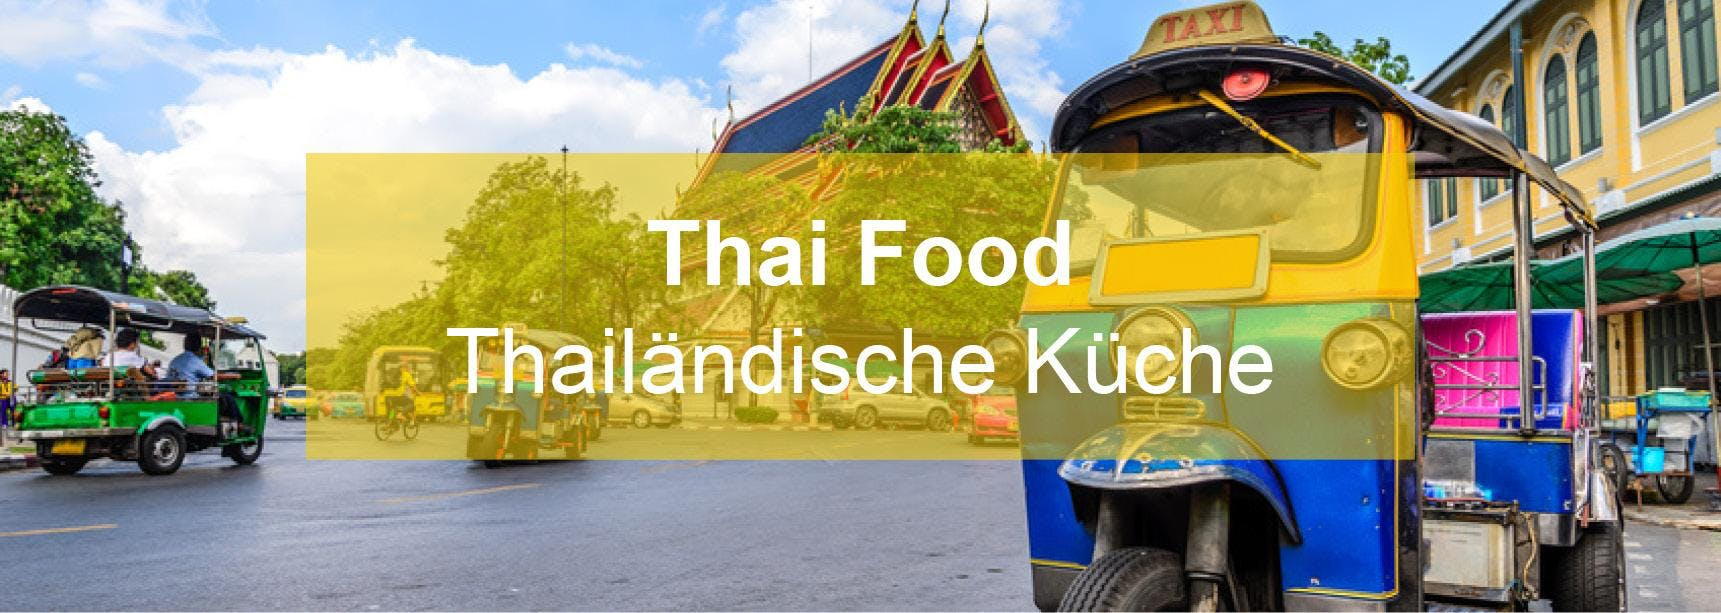 Thai economy events in the City. Top Upcoming Events for Thai economy